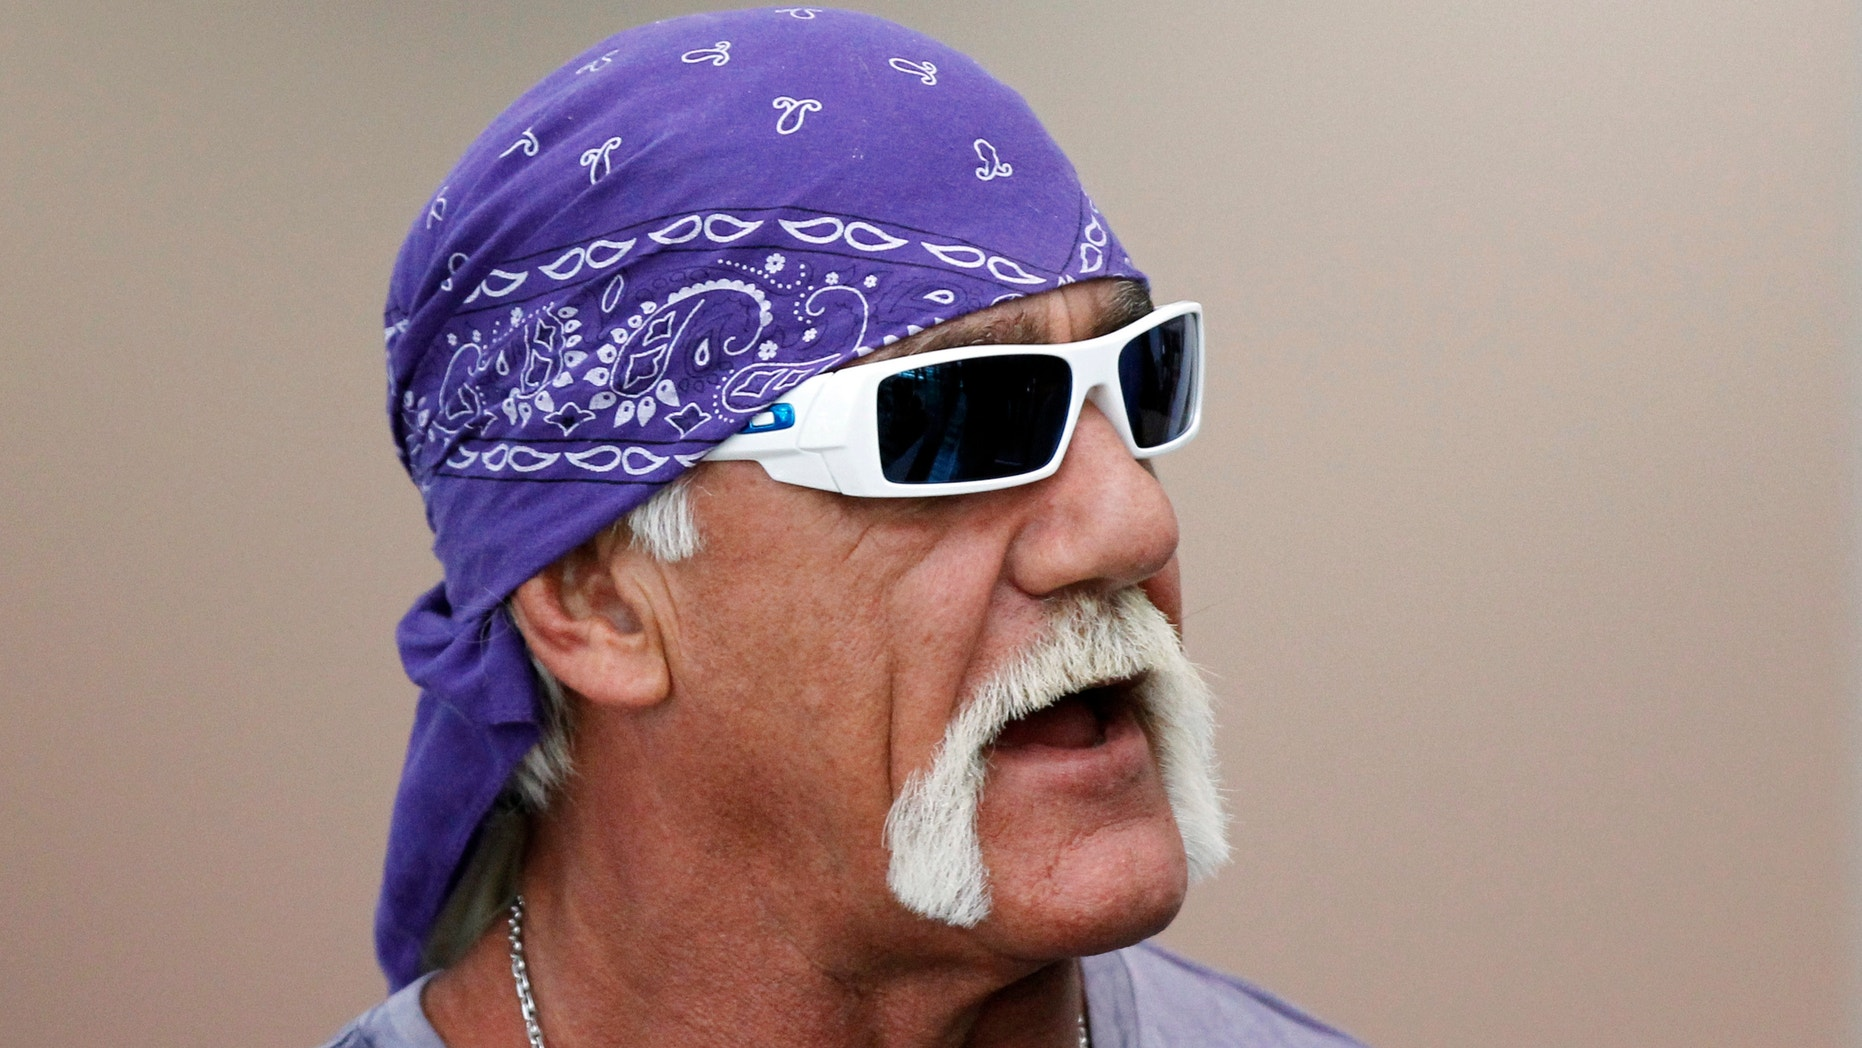 Hulk Hogan attends the Electronic Entertainment Expo in Los Angeles on June 7, 2011.